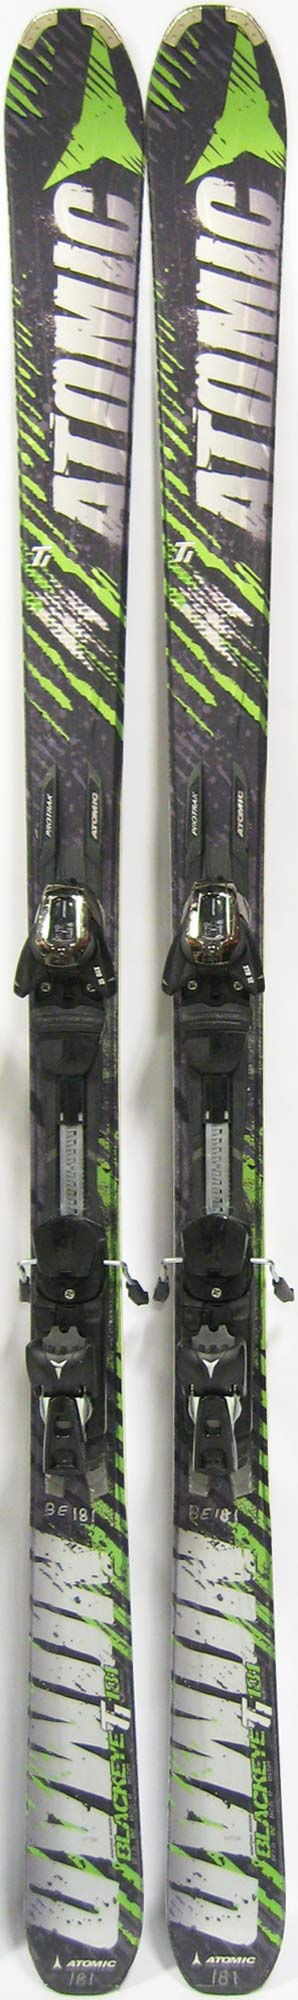 Topsheets of 2012 Atomic Nomad Blackeye Ti Skis For Sale